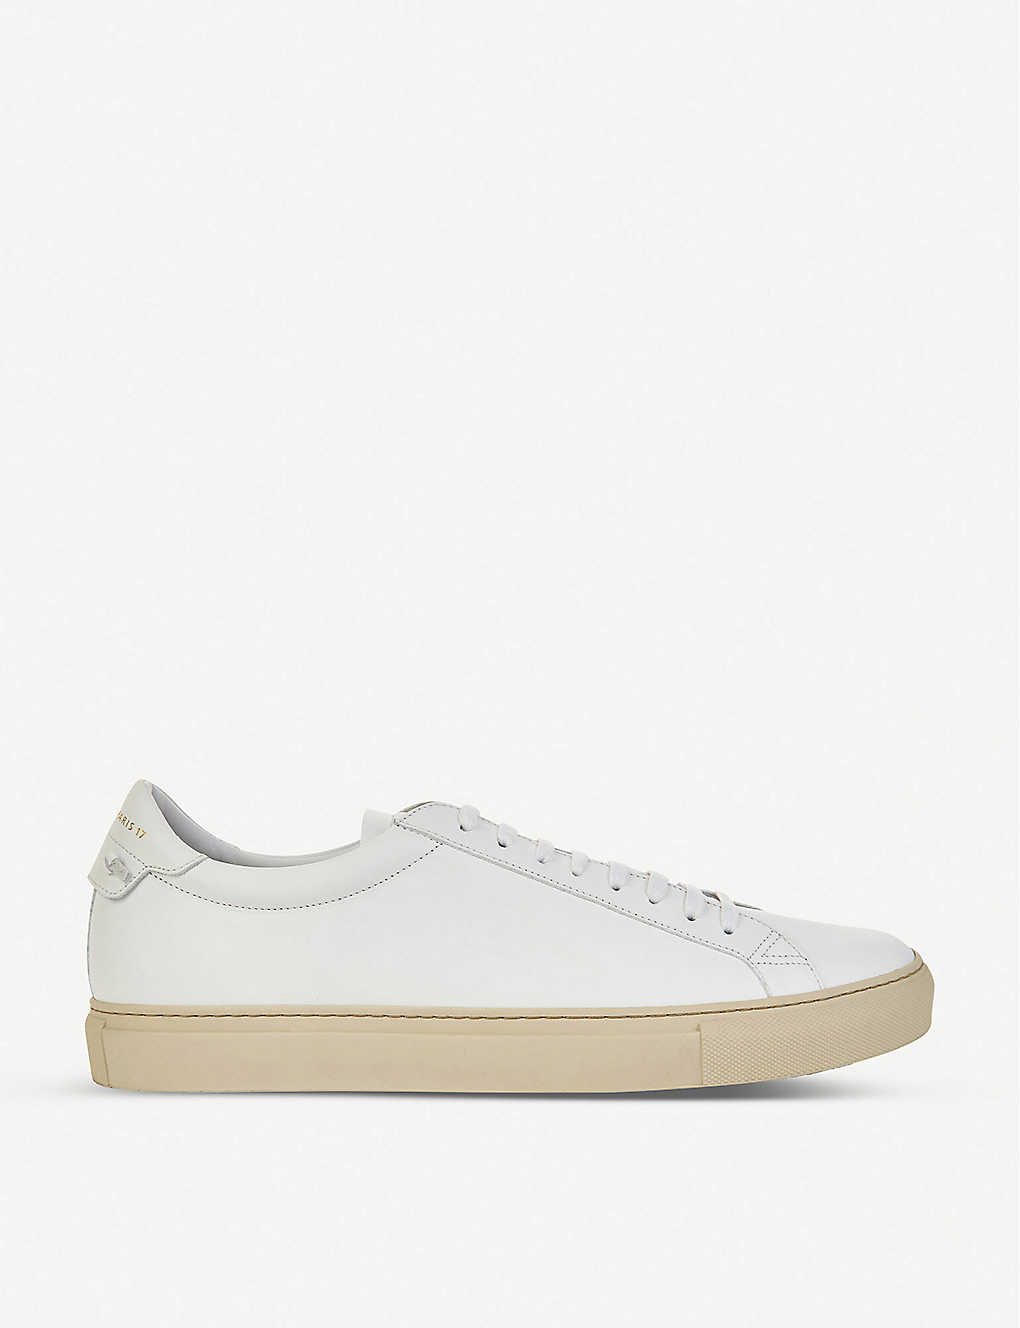 GIVENCHY: Knot leather lace-up trainers